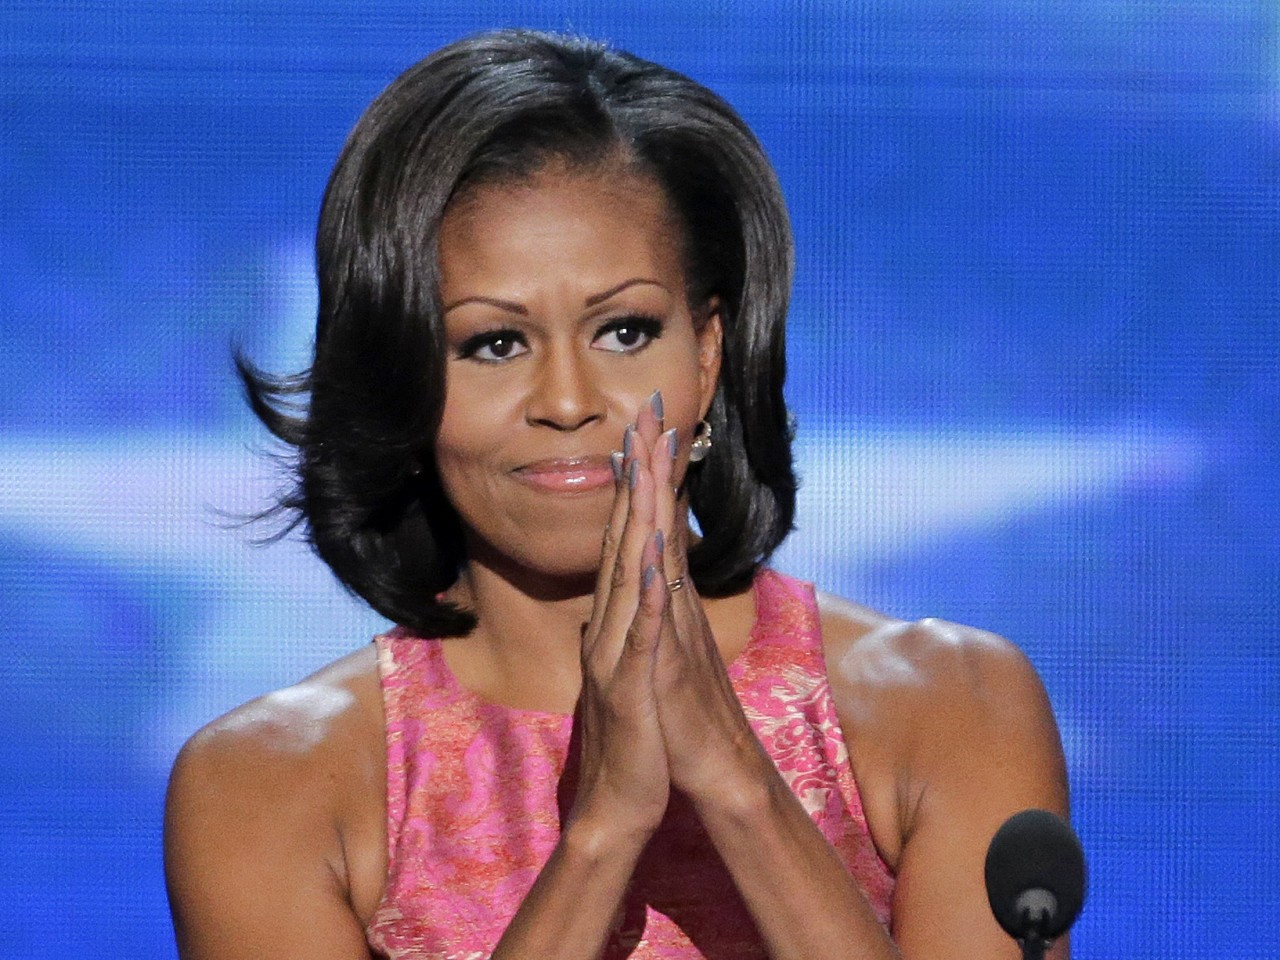 1280x960 - Michelle Obama Wallpapers 25